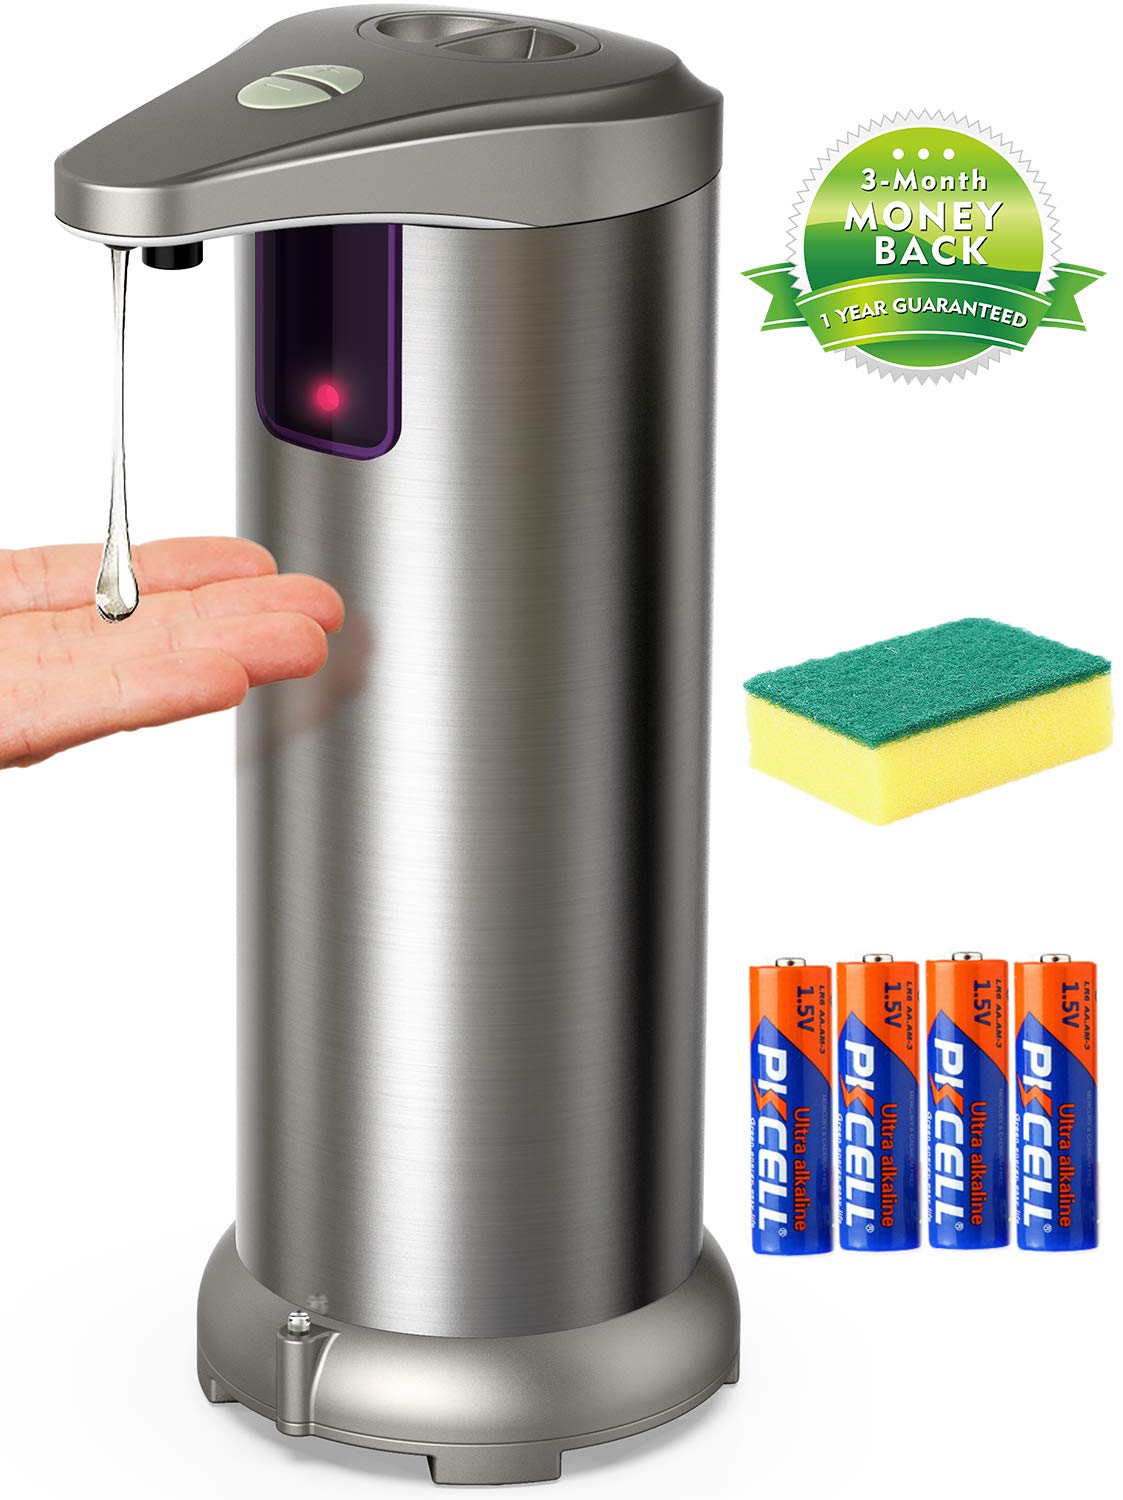 Apanage Soap Dispenser, Touchless Automatic Soap Dispenser Equipped Stainless Steel w/Infrared Motion Sensor Upgraded Waterproof Base for Bathroom & Kitchen